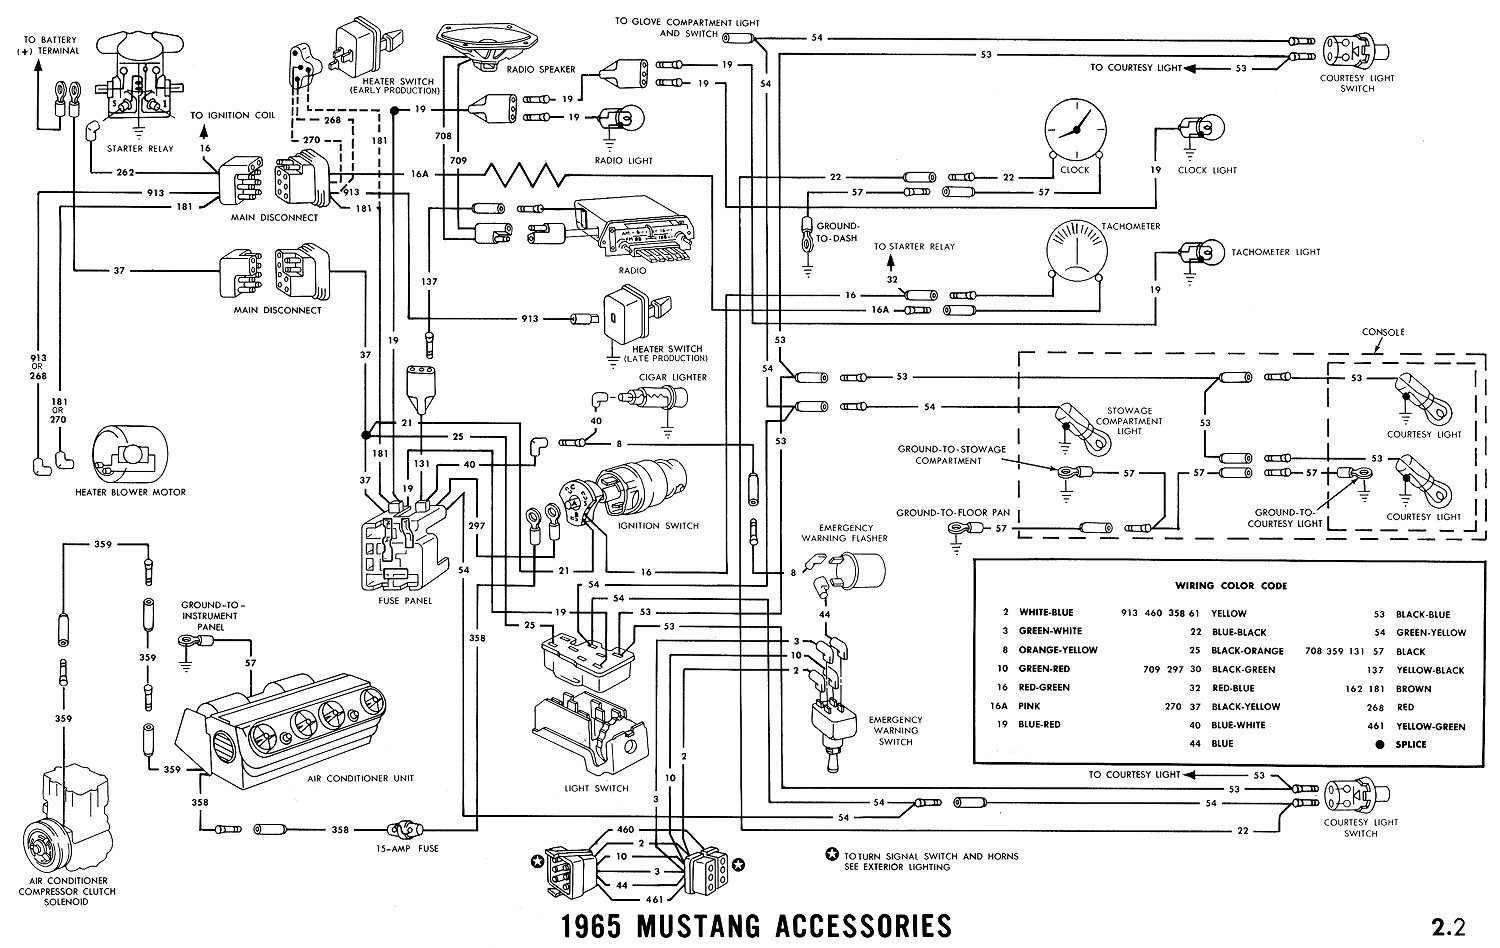 1965 Mustang Gt Fog Light Wiring Diagrams, 1965, Free